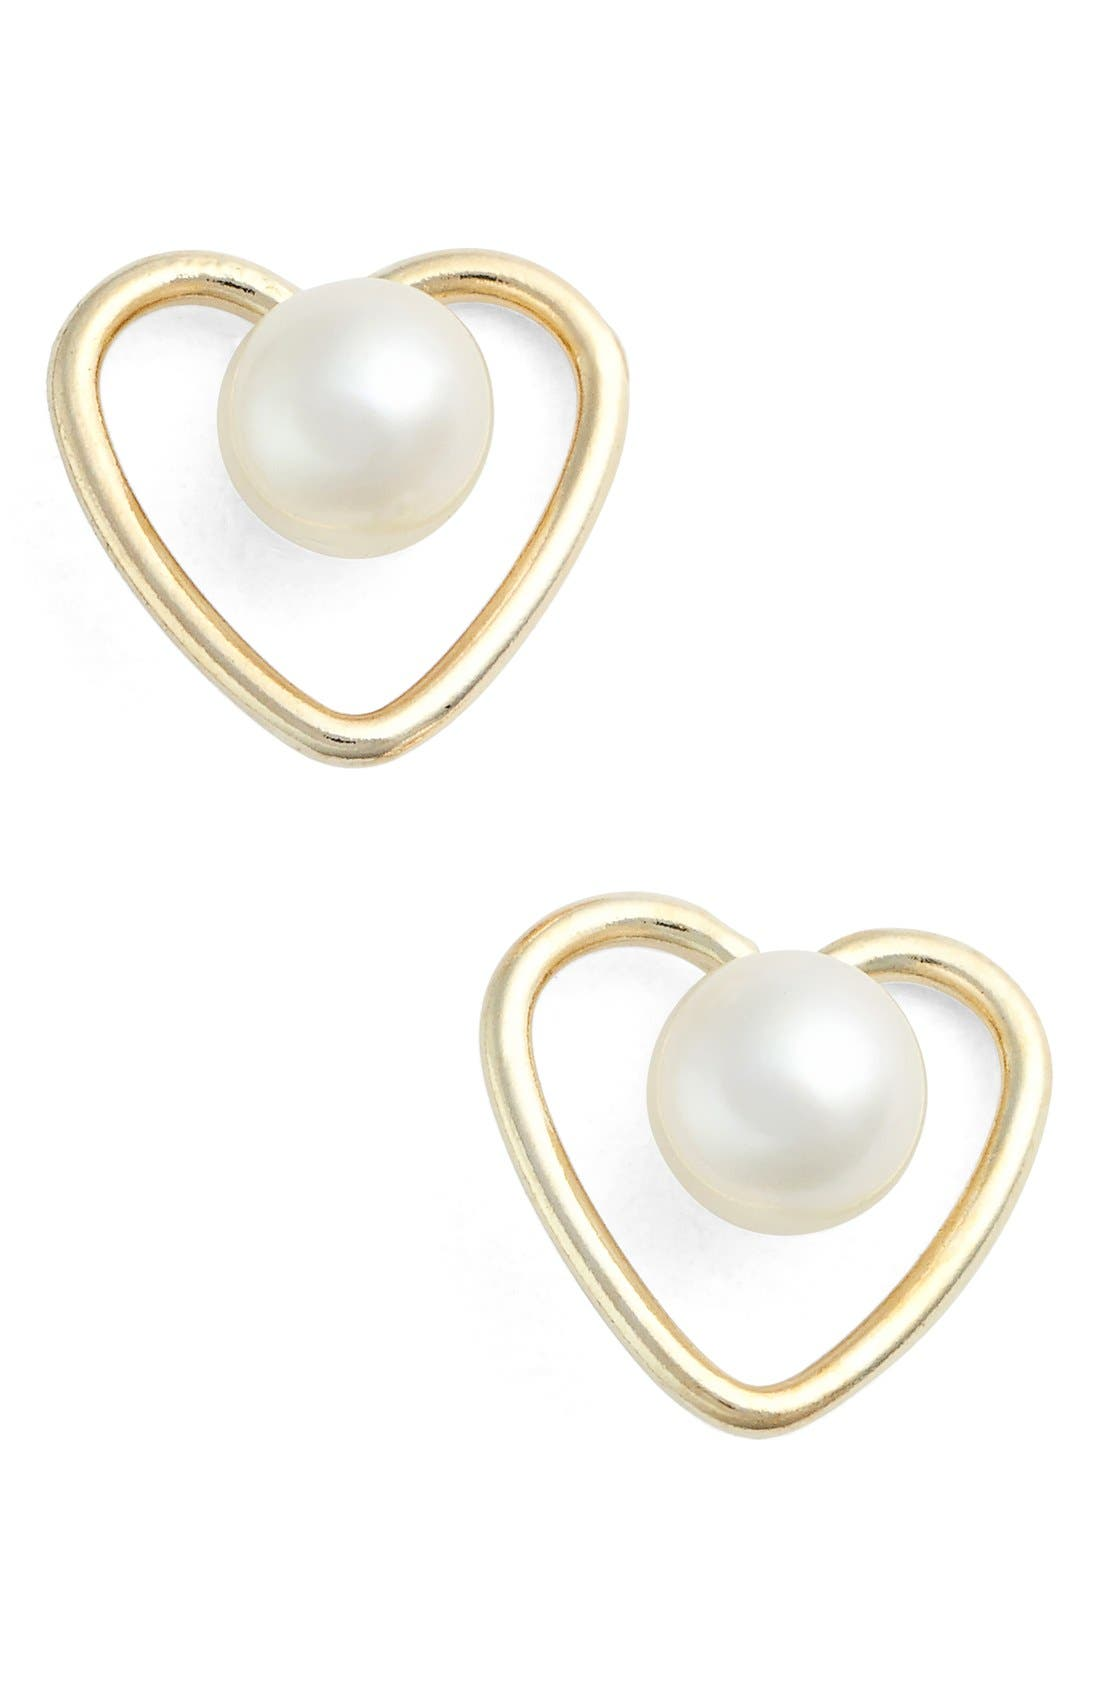 Cultured Pearl Heart Earrings,                         Main,                         color, YELLOW GOLD